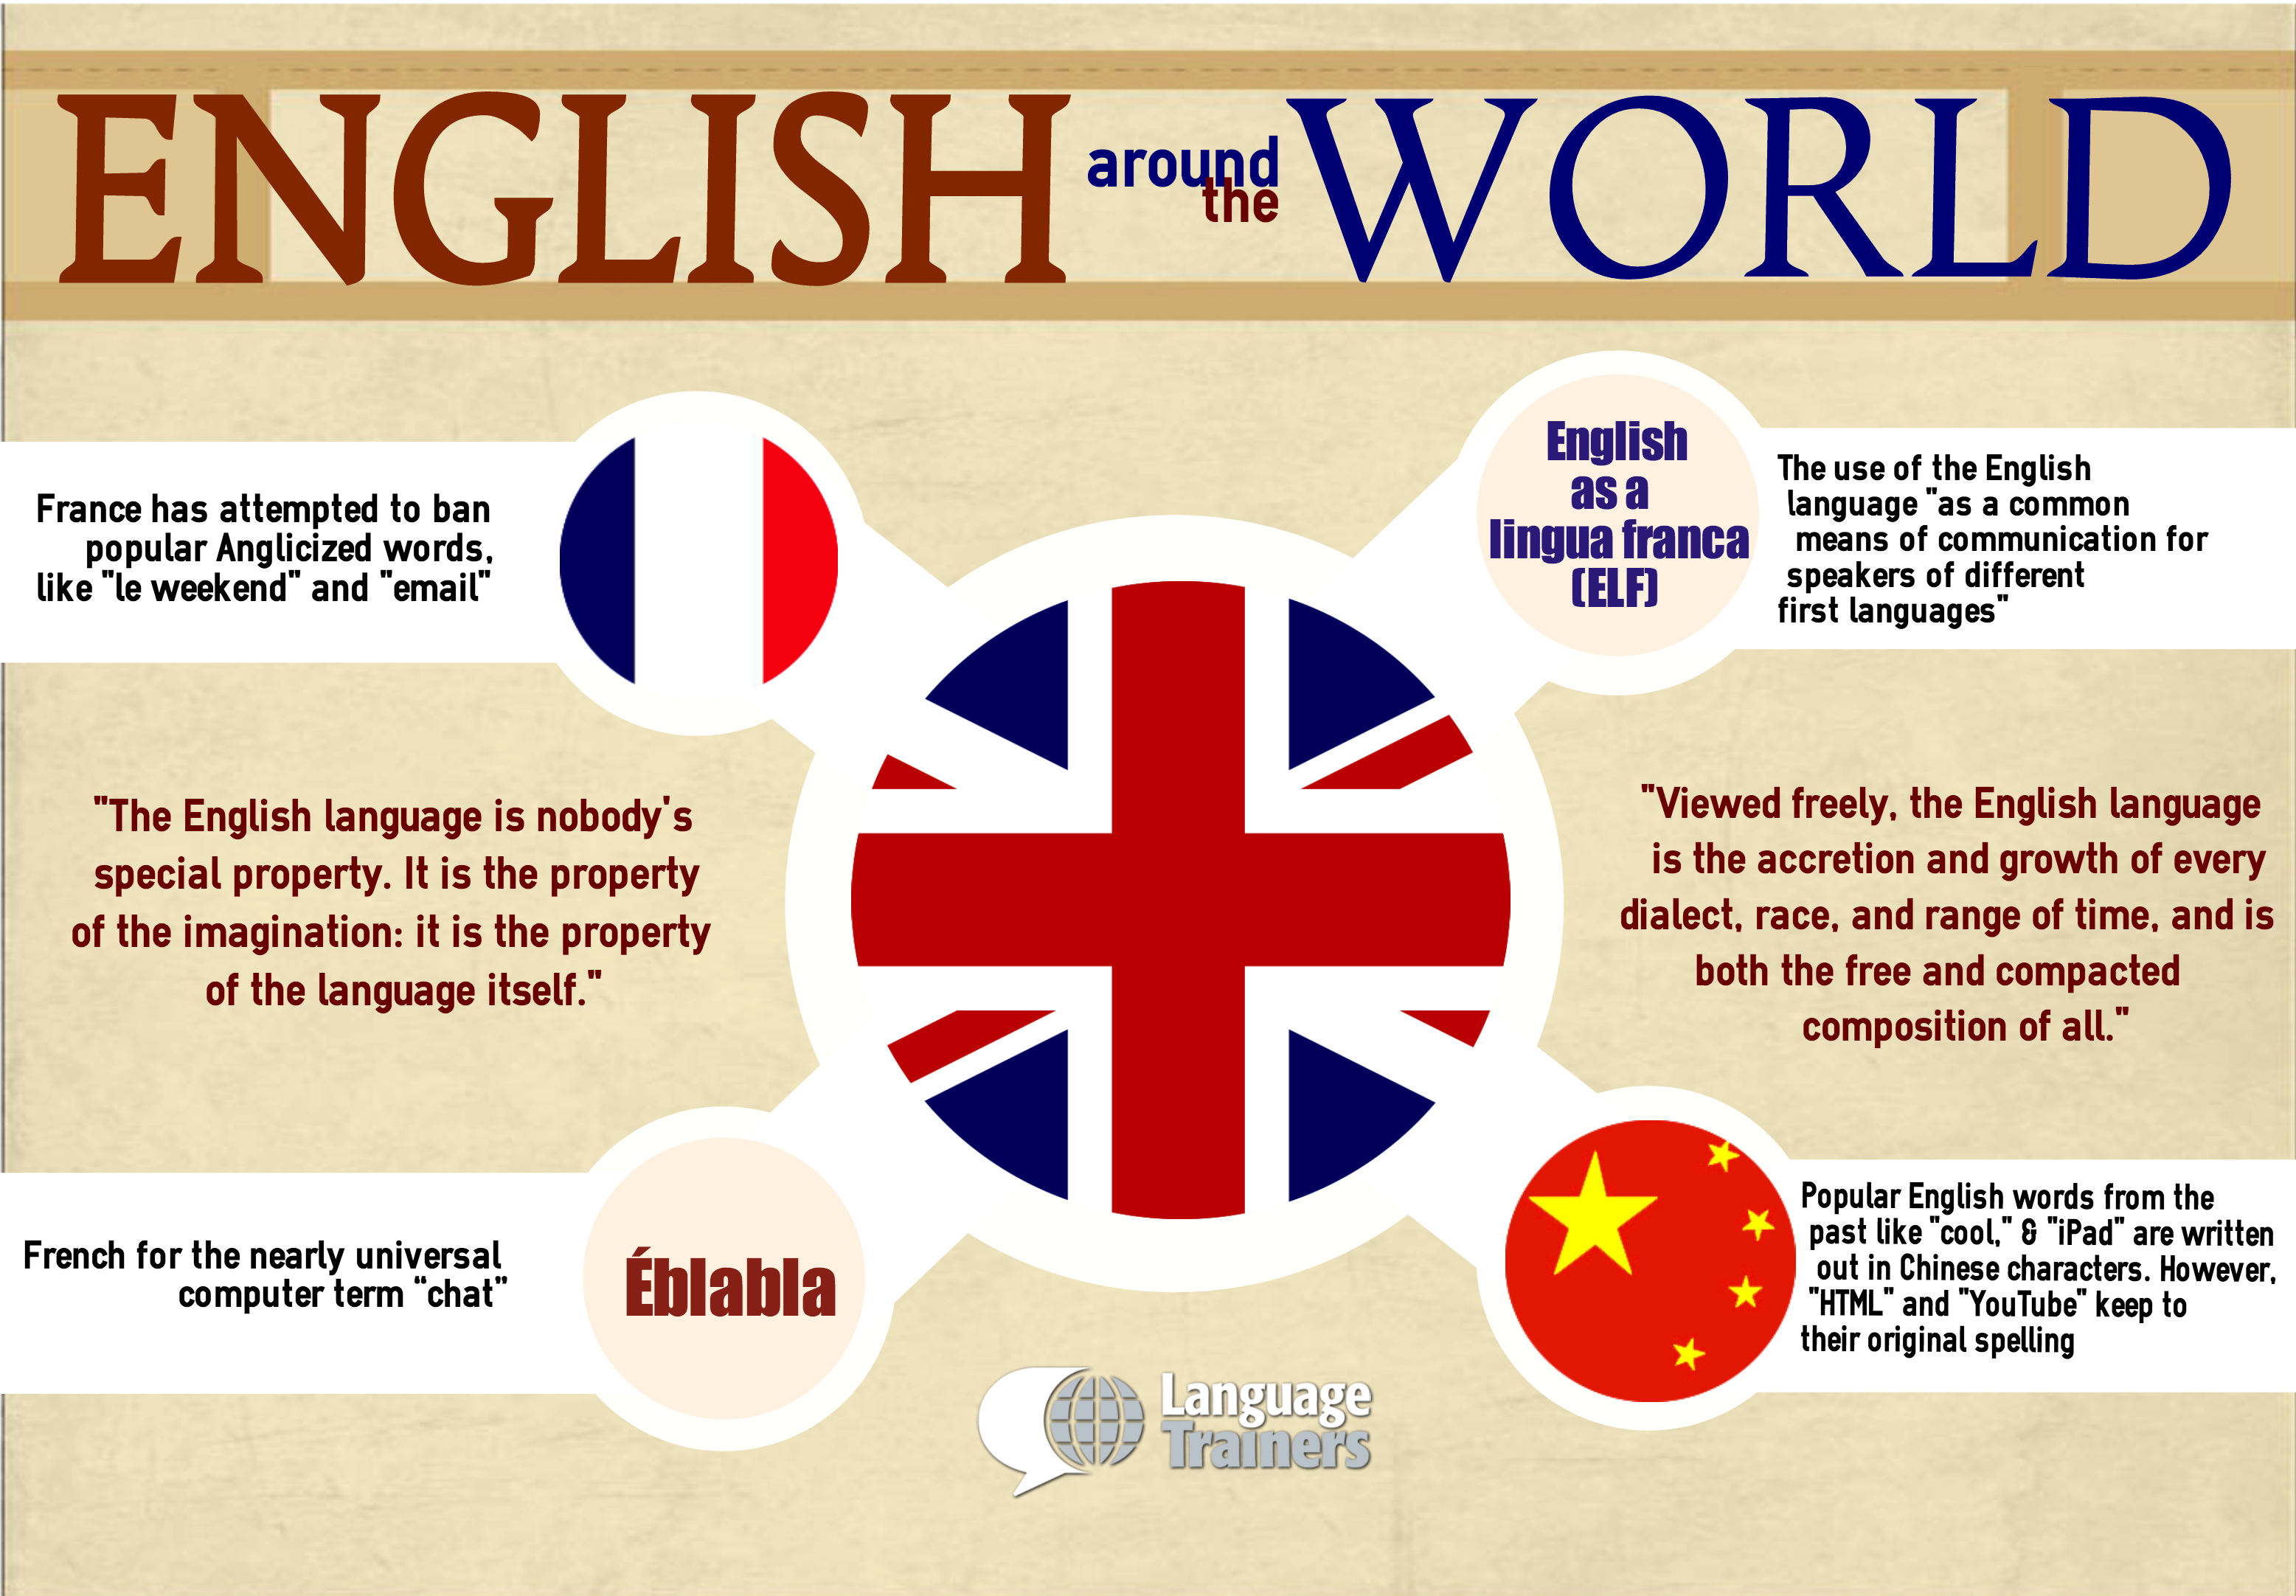 How Is English Perceived In Foreign Countries Language Trainers - English as a world language